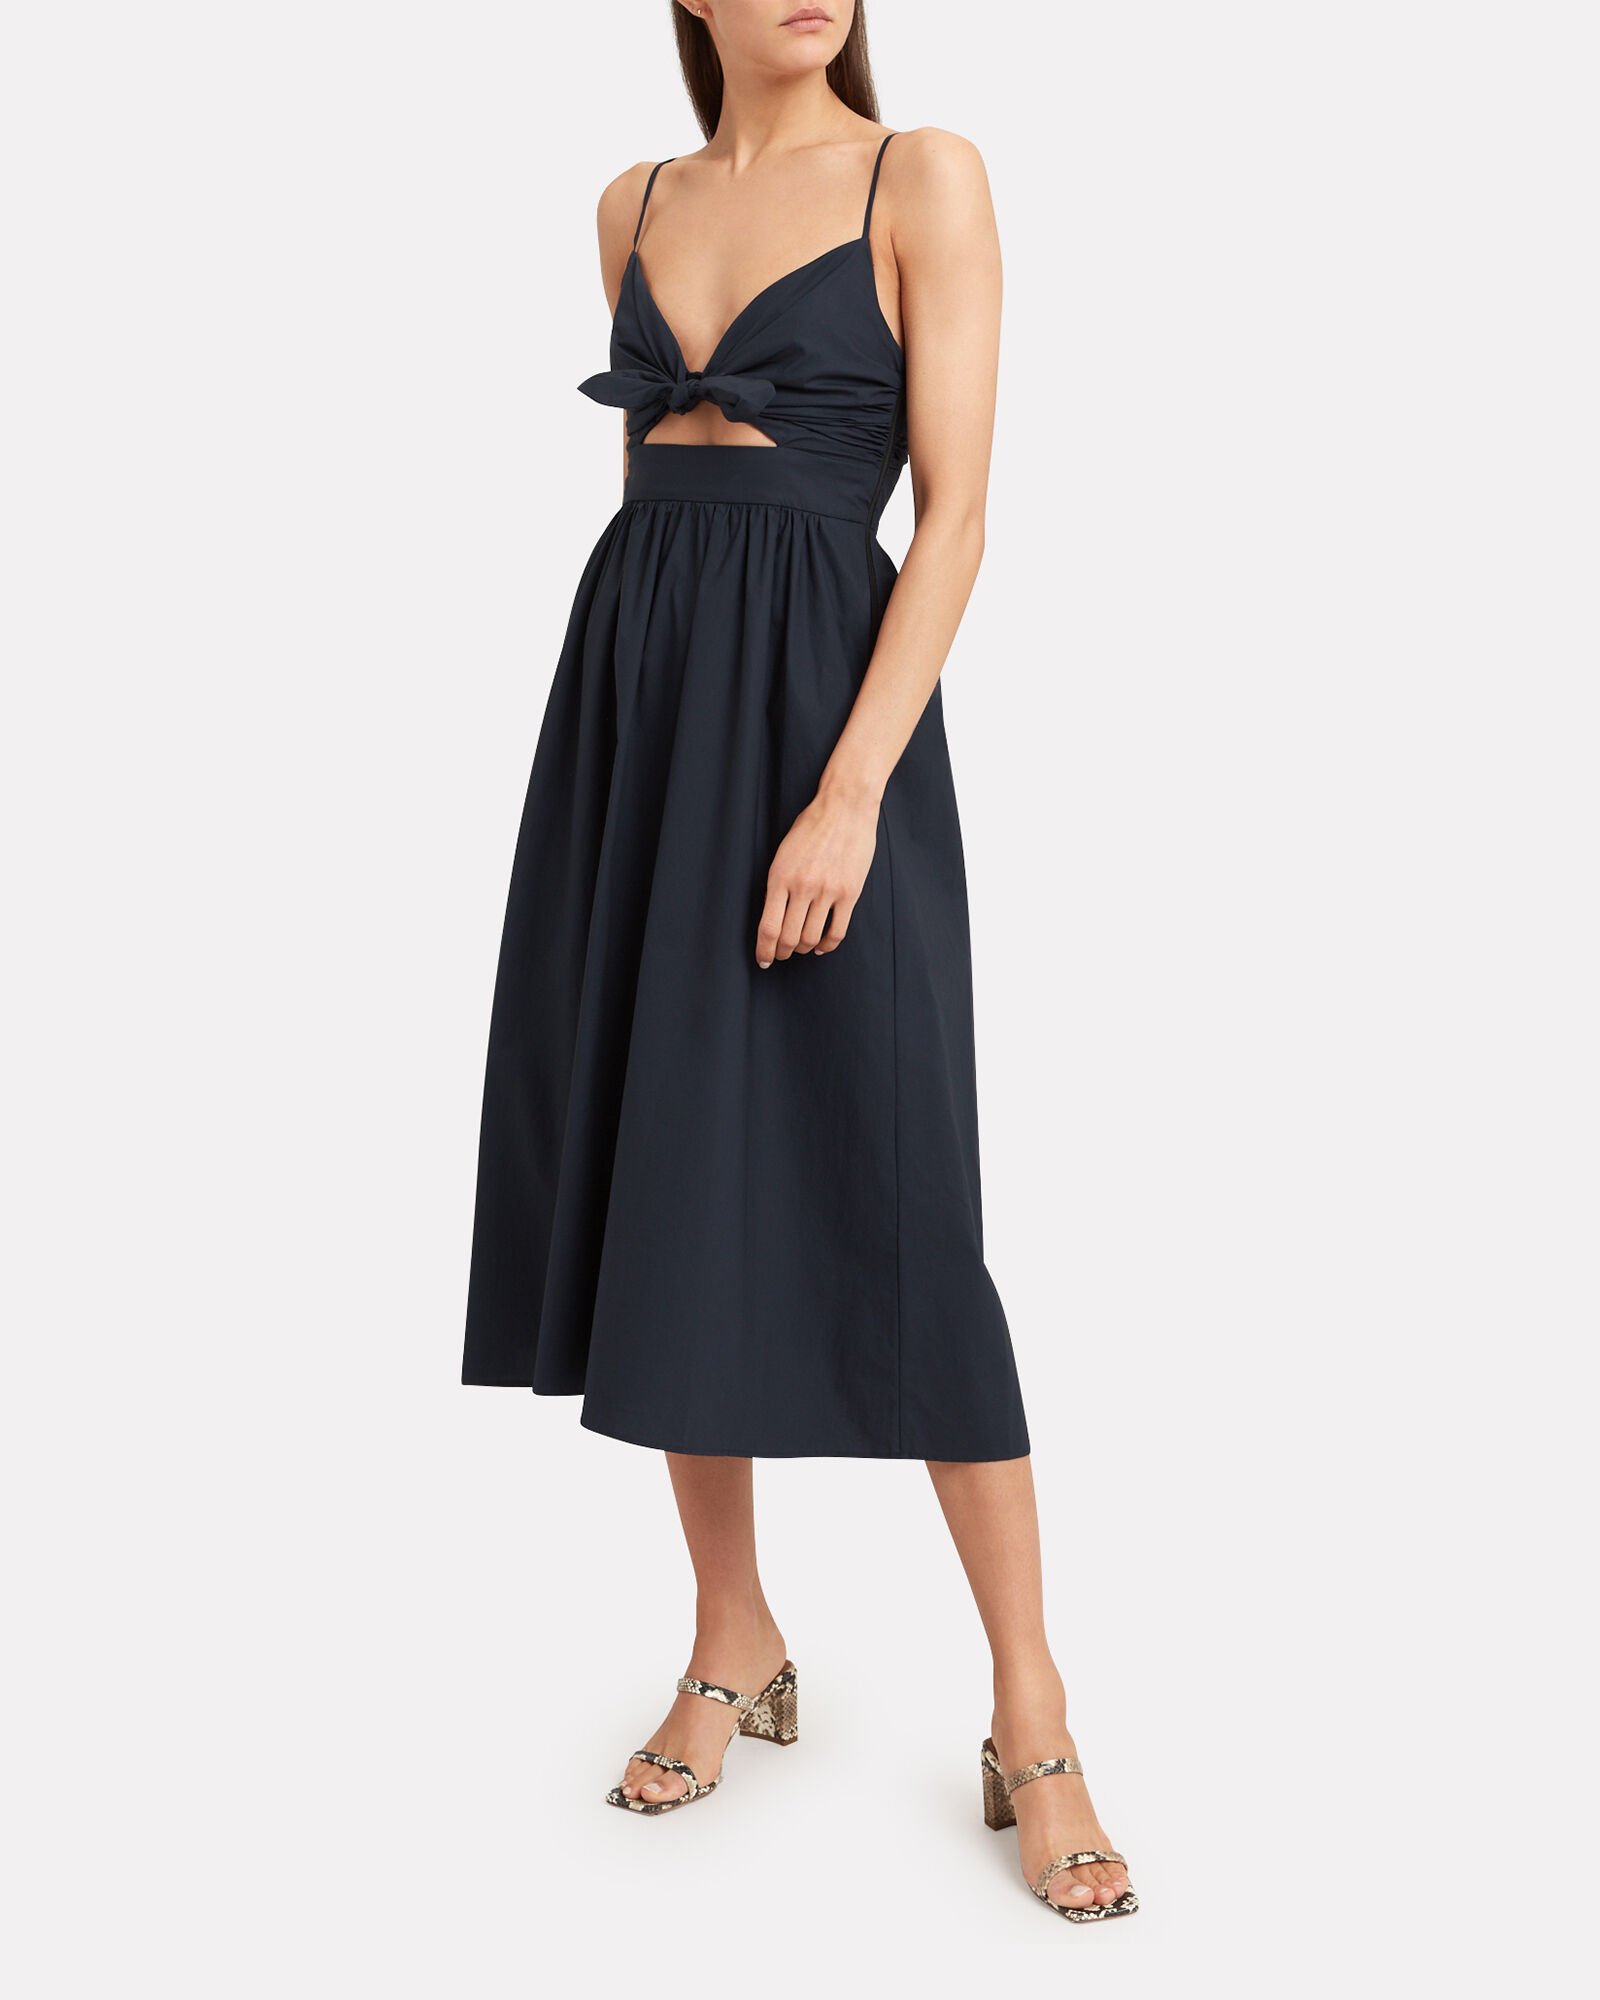 Daniela Twill Cut-Out Dress, NAVY, hi-res